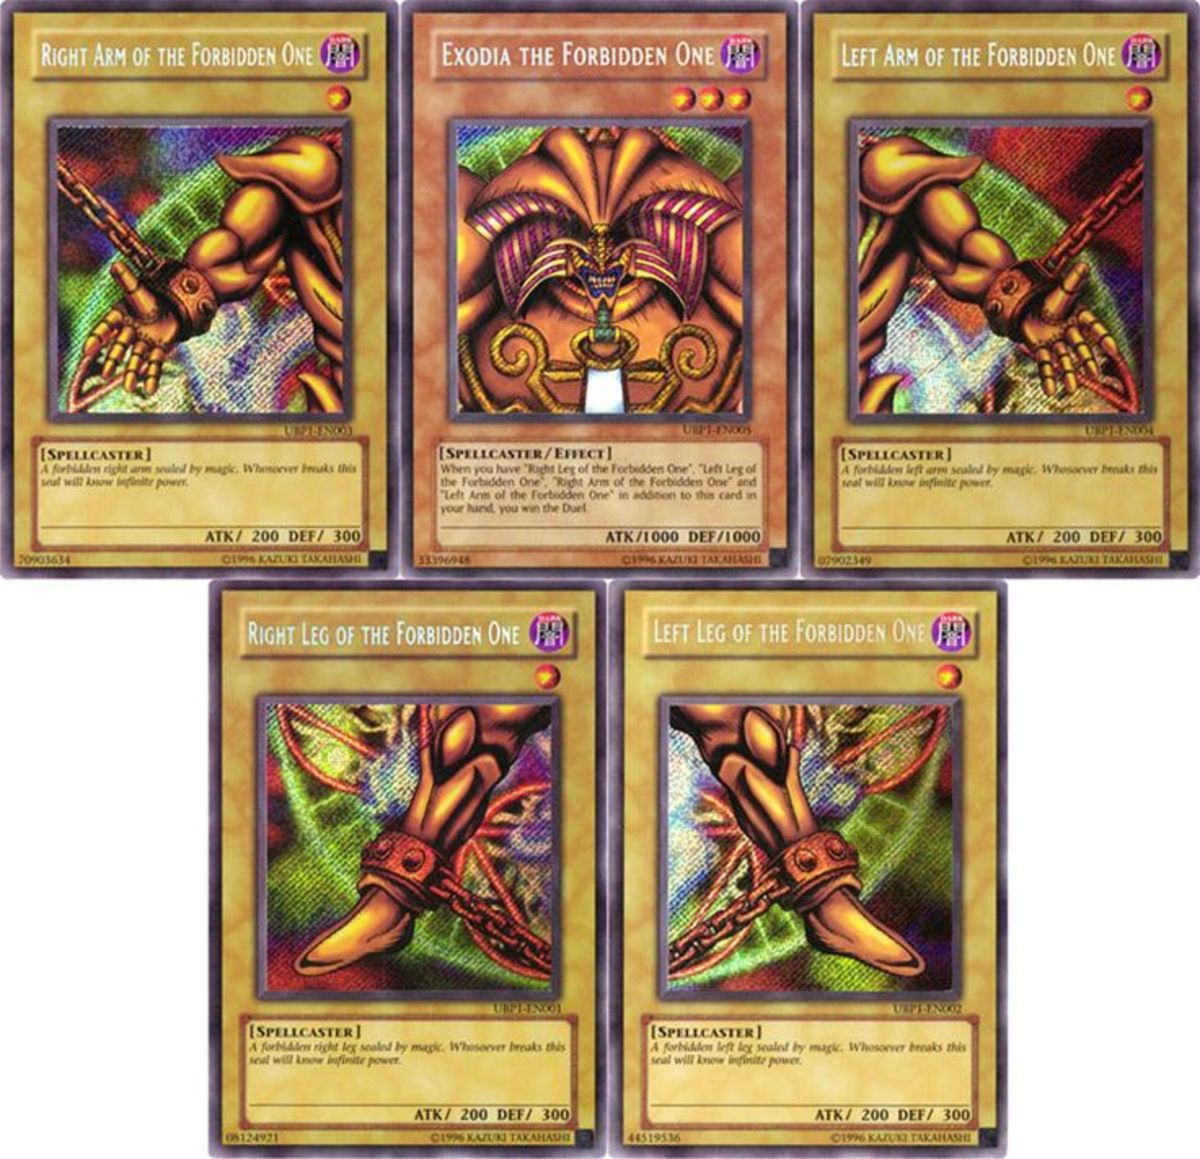 A Comprehensive Guide on How to Buy Yu-Gi-Oh Cards Online